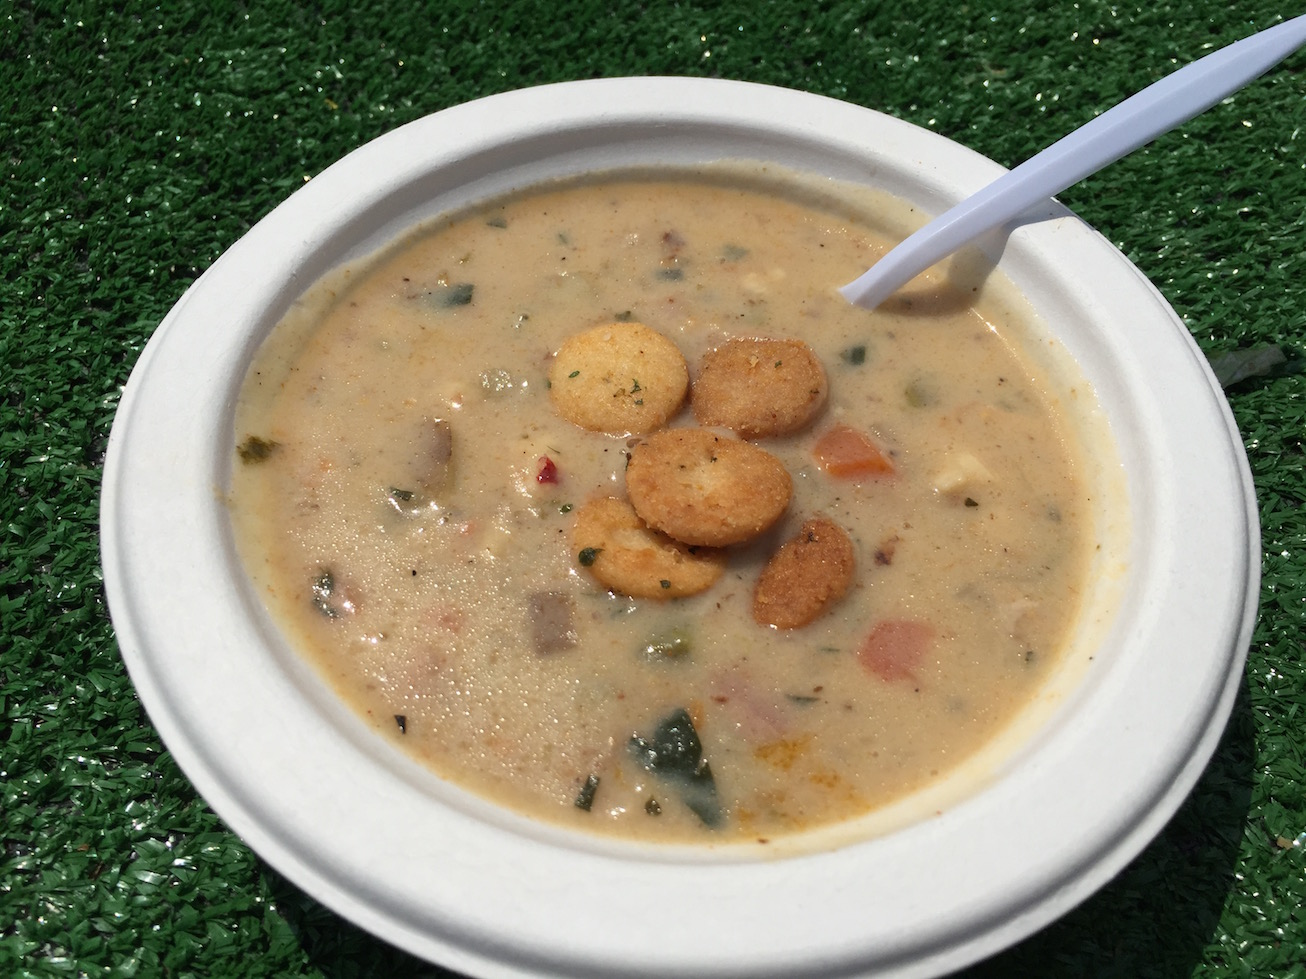 PEI Mussel and Pork Belly Chowder